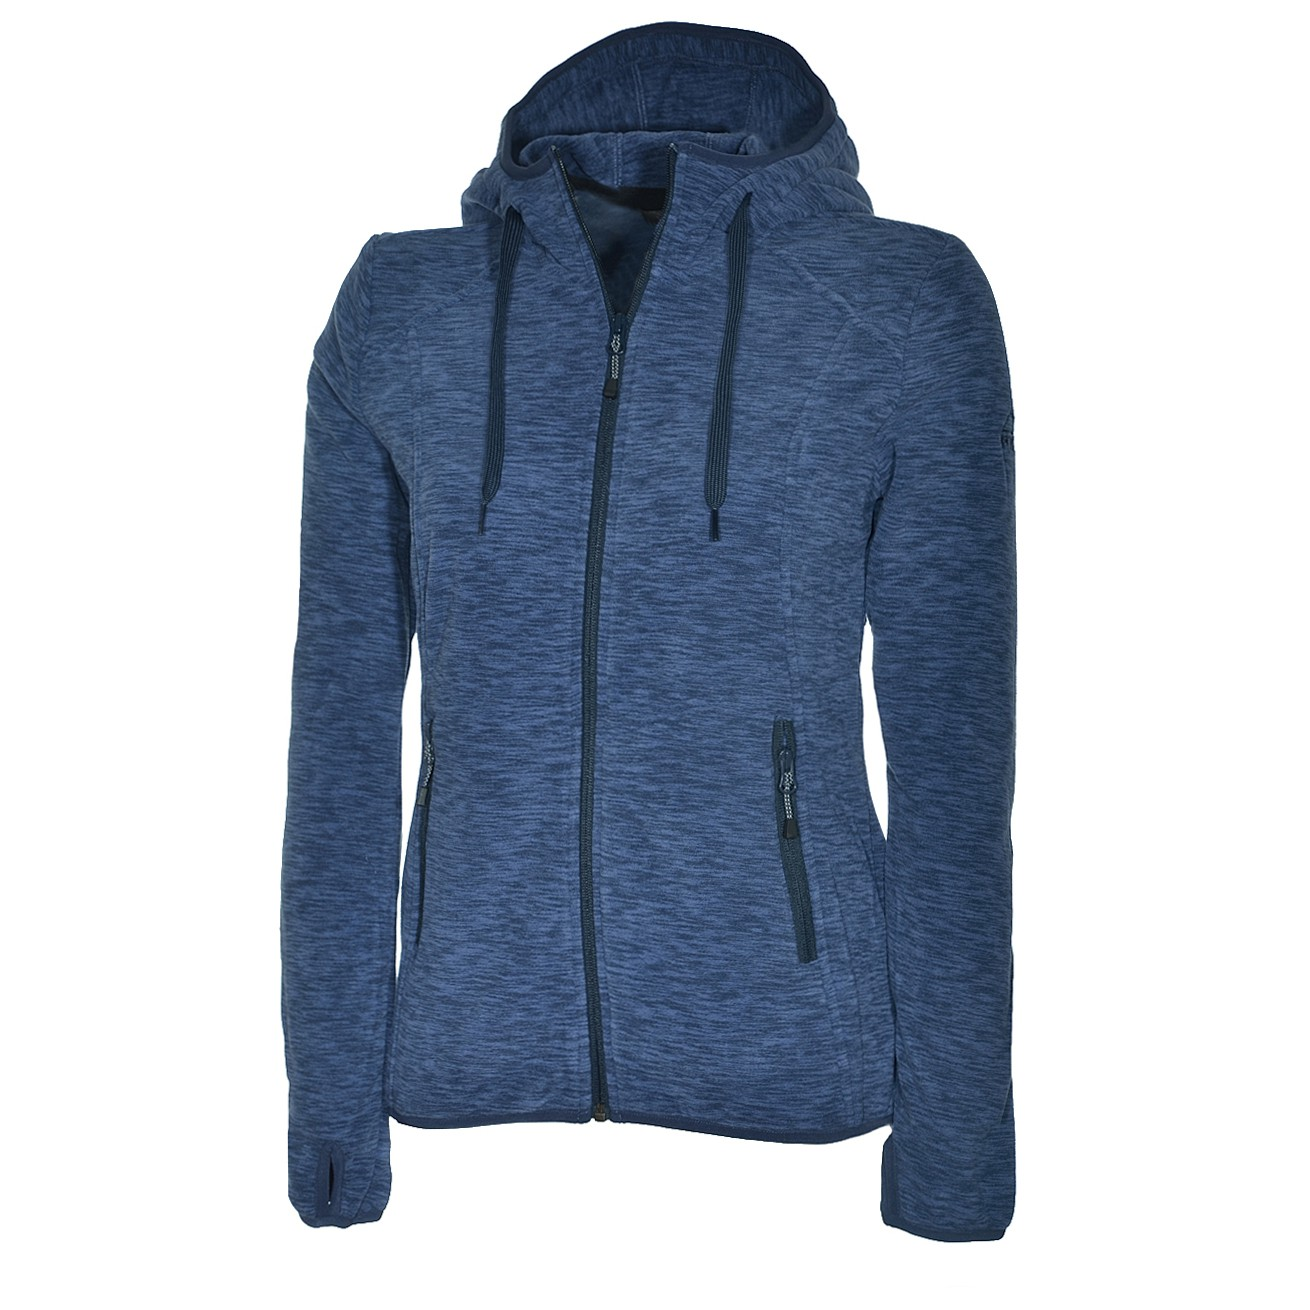 Fleece jacke damen ebay